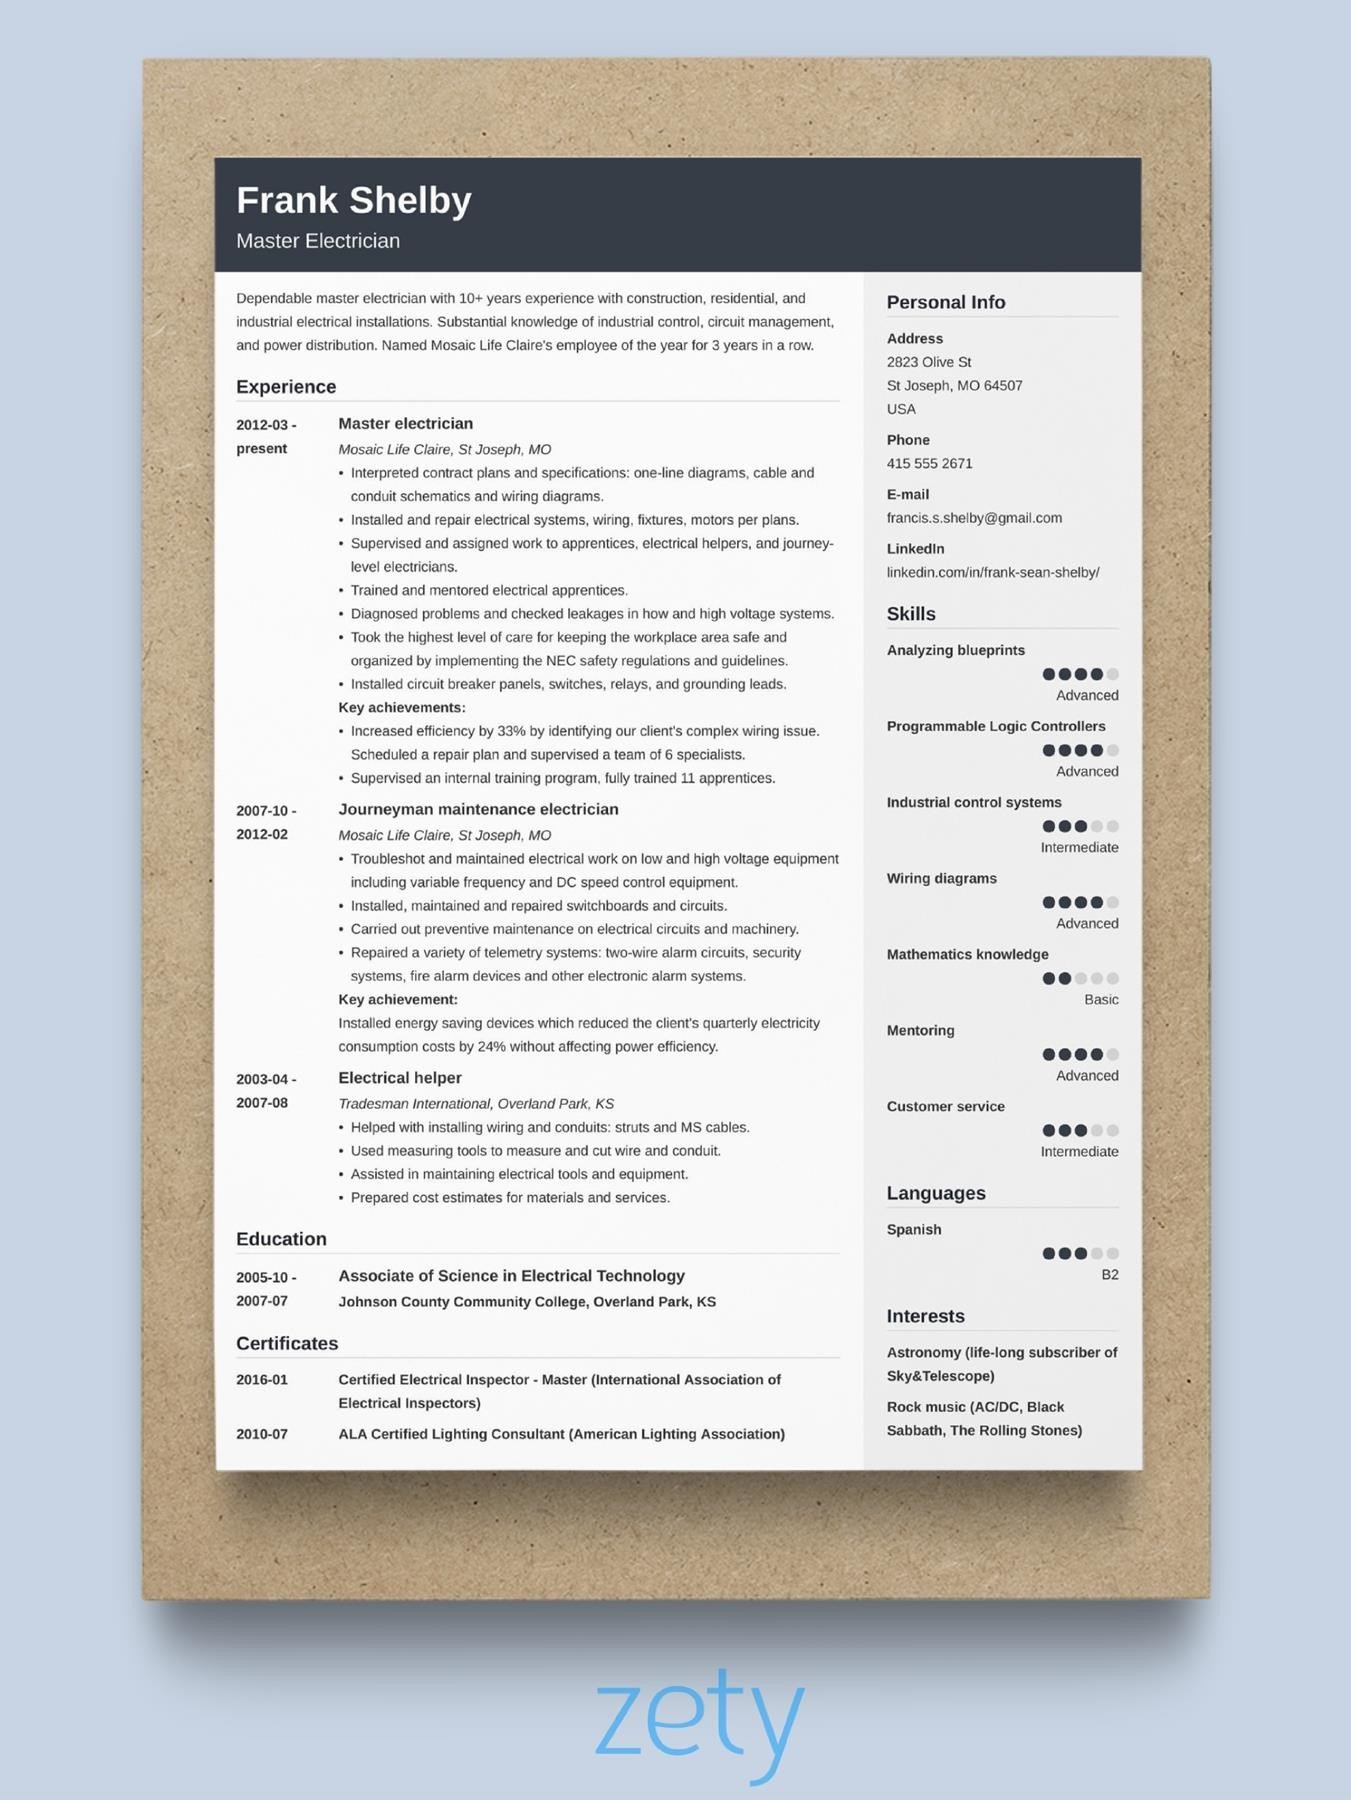 best resume format professional samples top templates organized synonym vice president Resume Top Resume Templates 2020